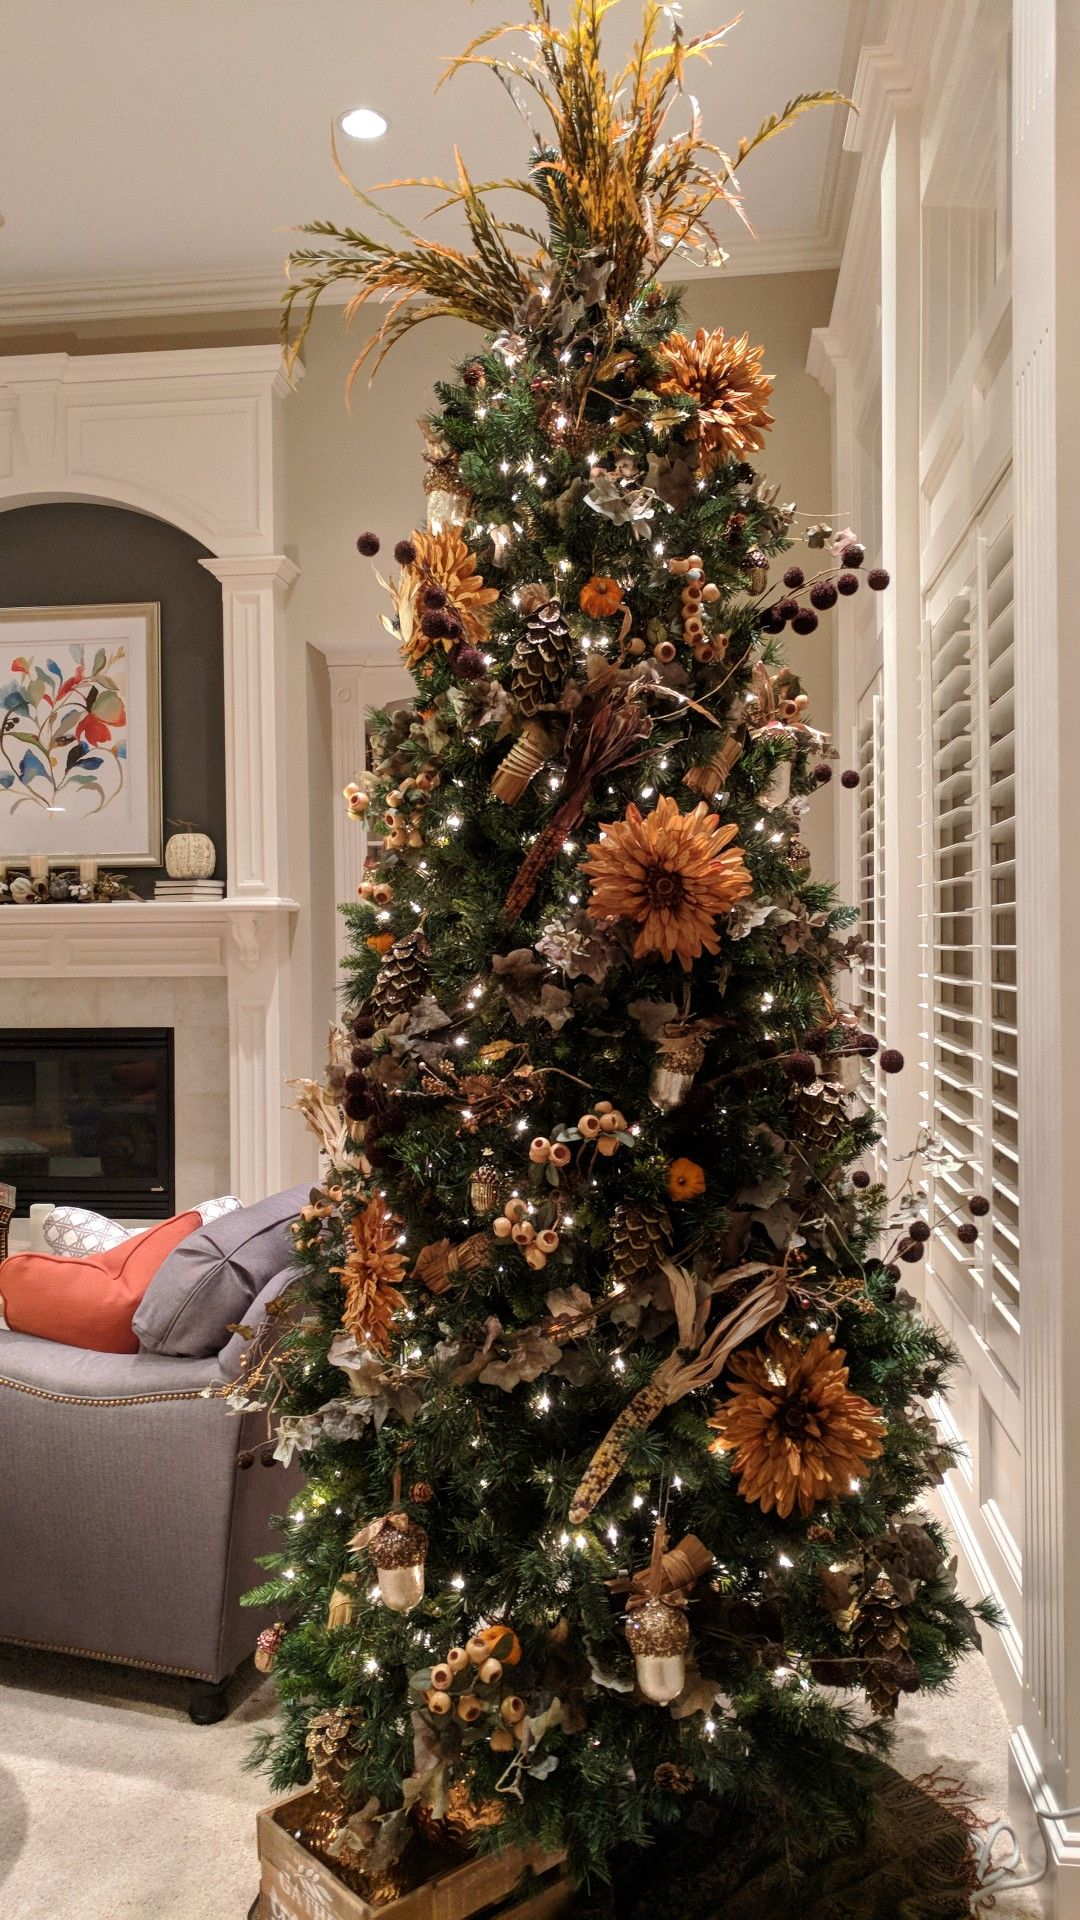 My Fall 'Christmas Around the Year' Tree! Decorated with